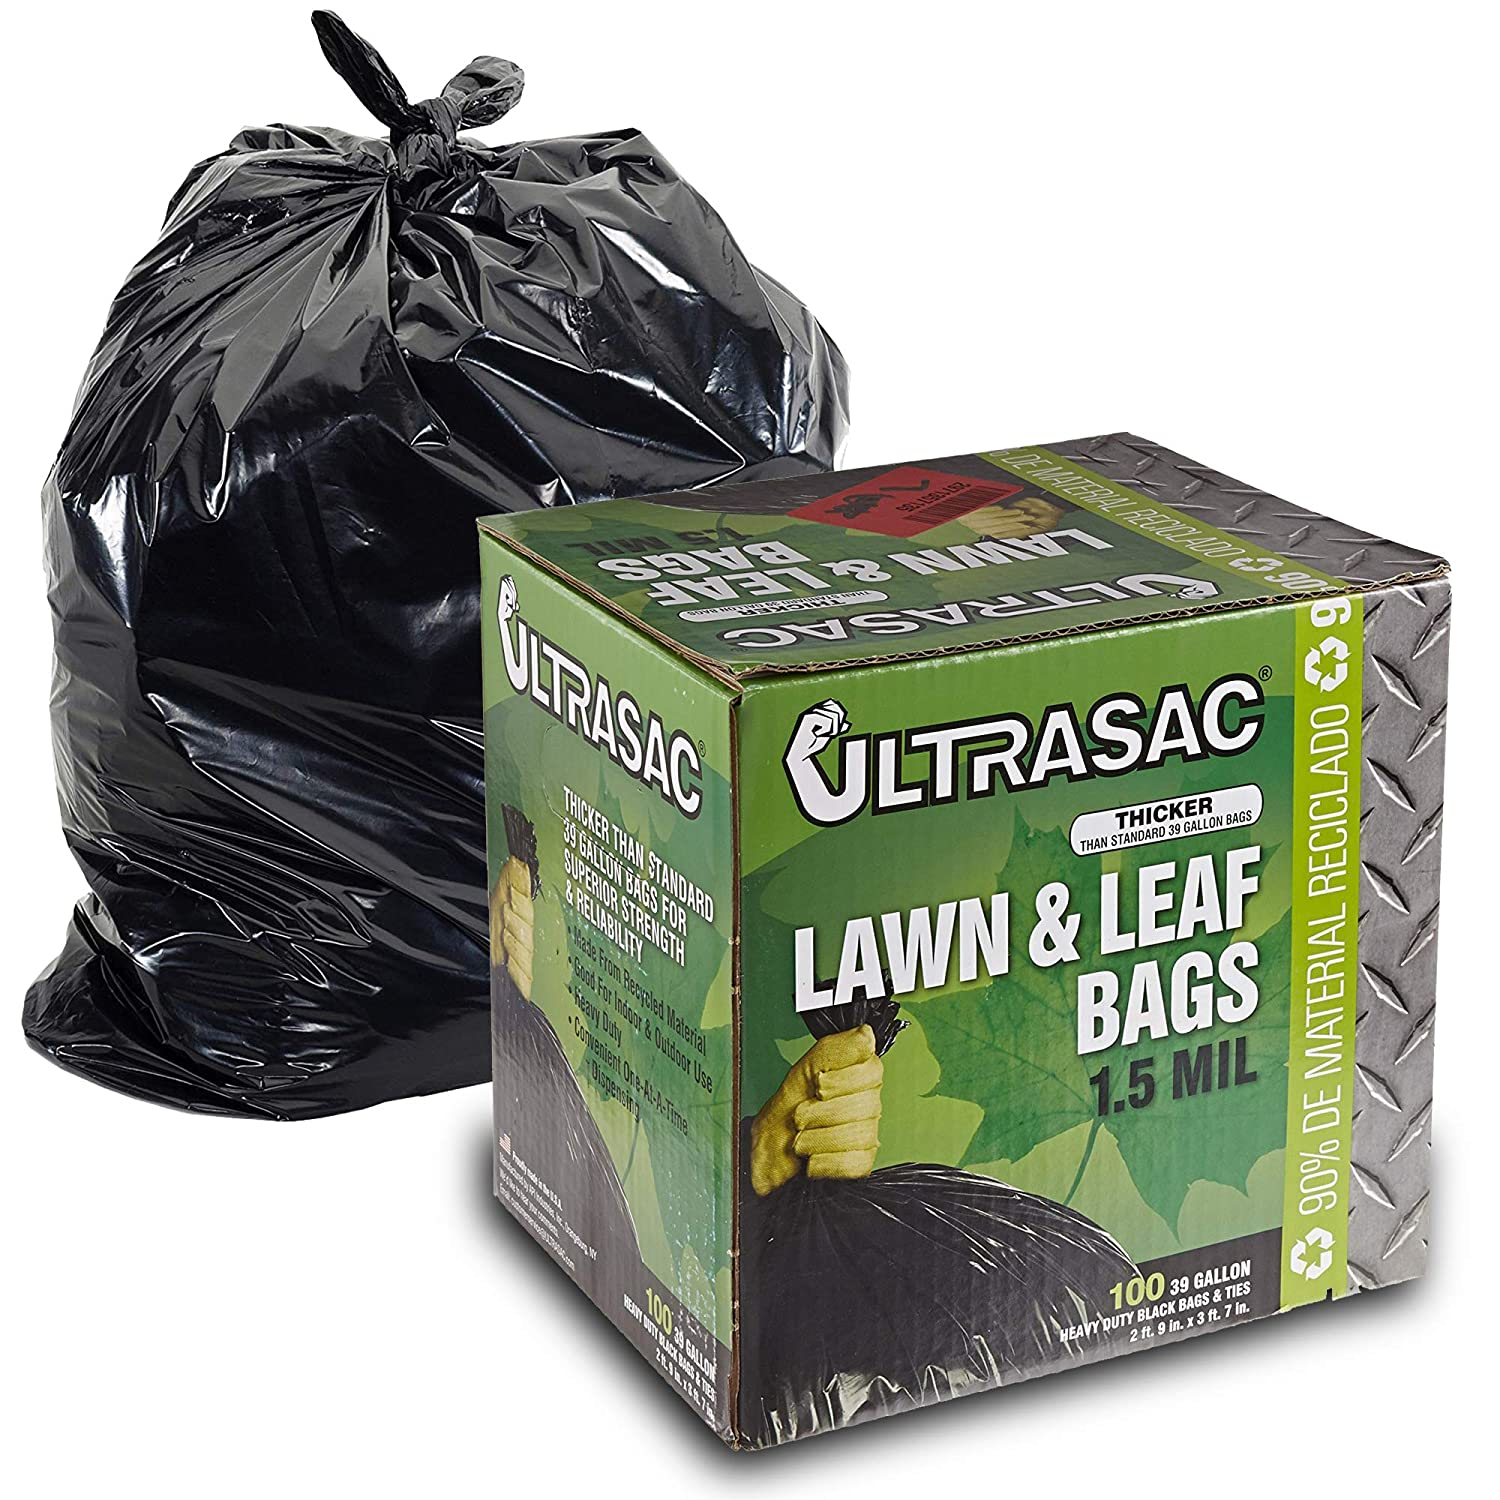 Lawn and Leaf Bags by Ultrasac - 39 Gallon Garbage Bags (HUGE 100 Pack/w Ties) 43' x 33' Heavy Duty Industrial Yard Waste Bag - Professional Outdoor Trash Bags for Contractors and more